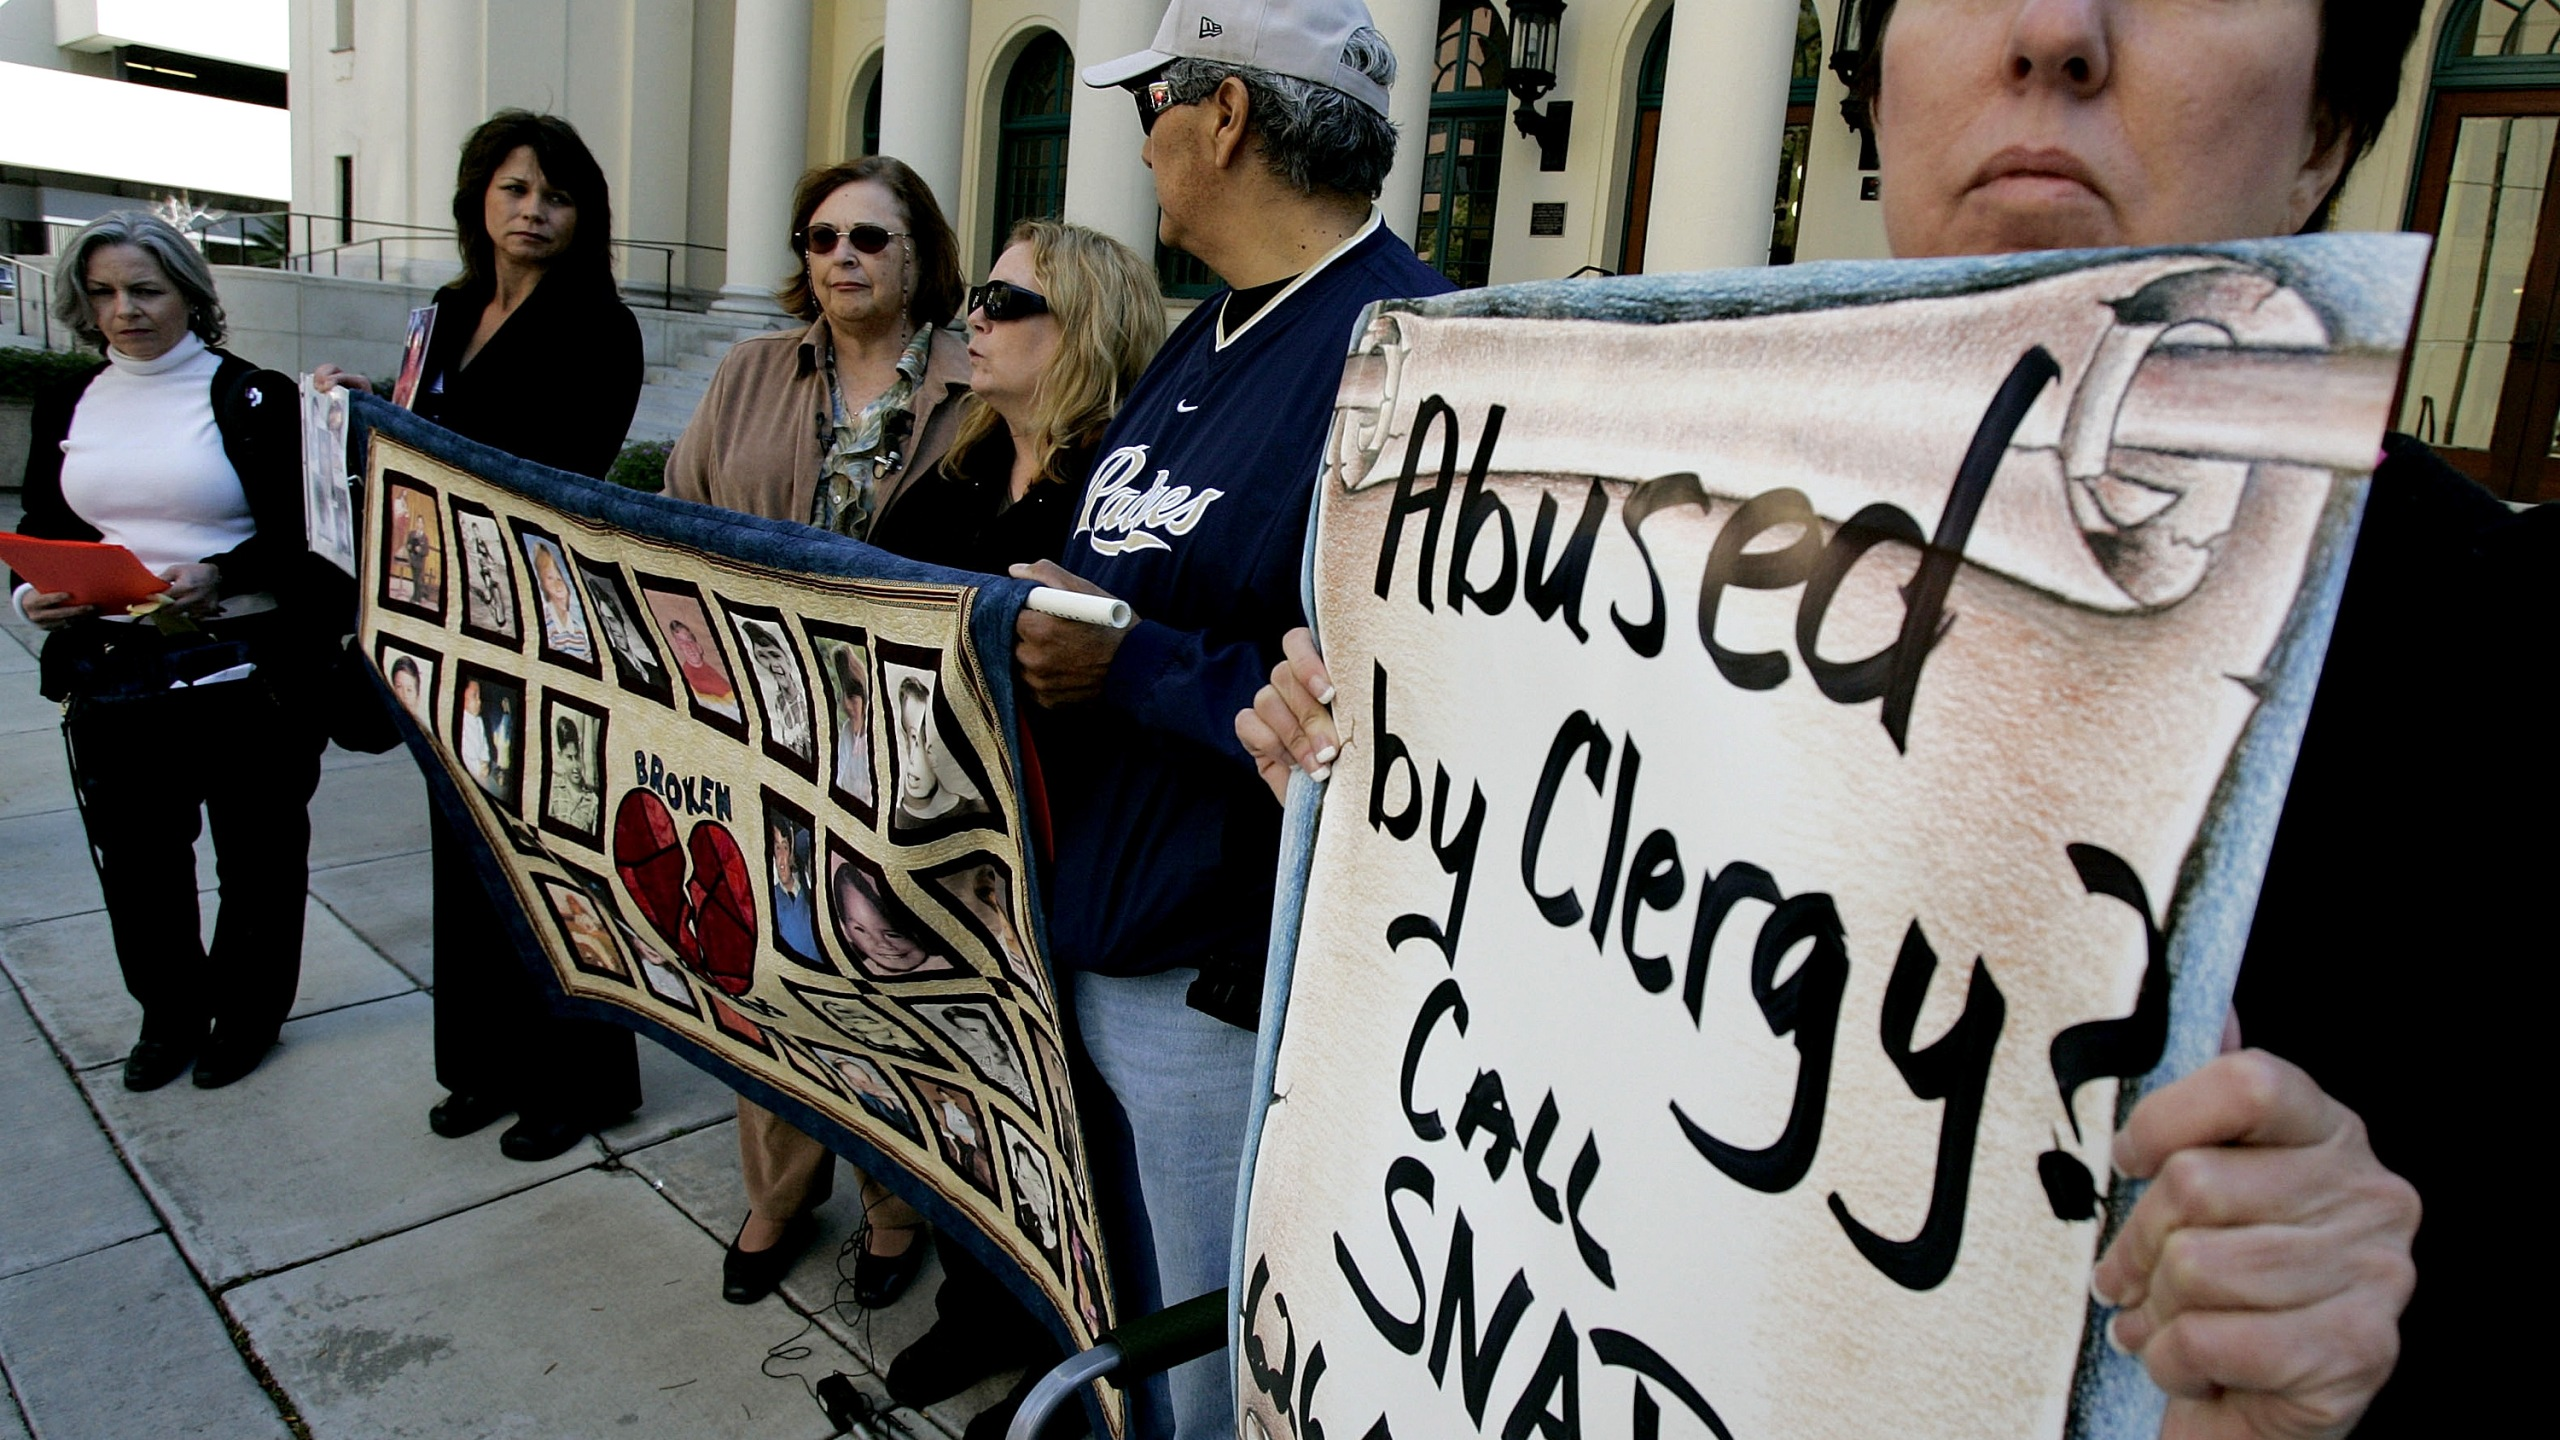 Protestors and alleged sexual abuse victims stand outside of The Jacob Weinburg Couthouse during a vigil to bring attention to victims of sexual abuse by religious leaders within the Catholic church on March 1, 2007 in San Diego, California. (Credit: Sandy Huffaker/Getty Images)